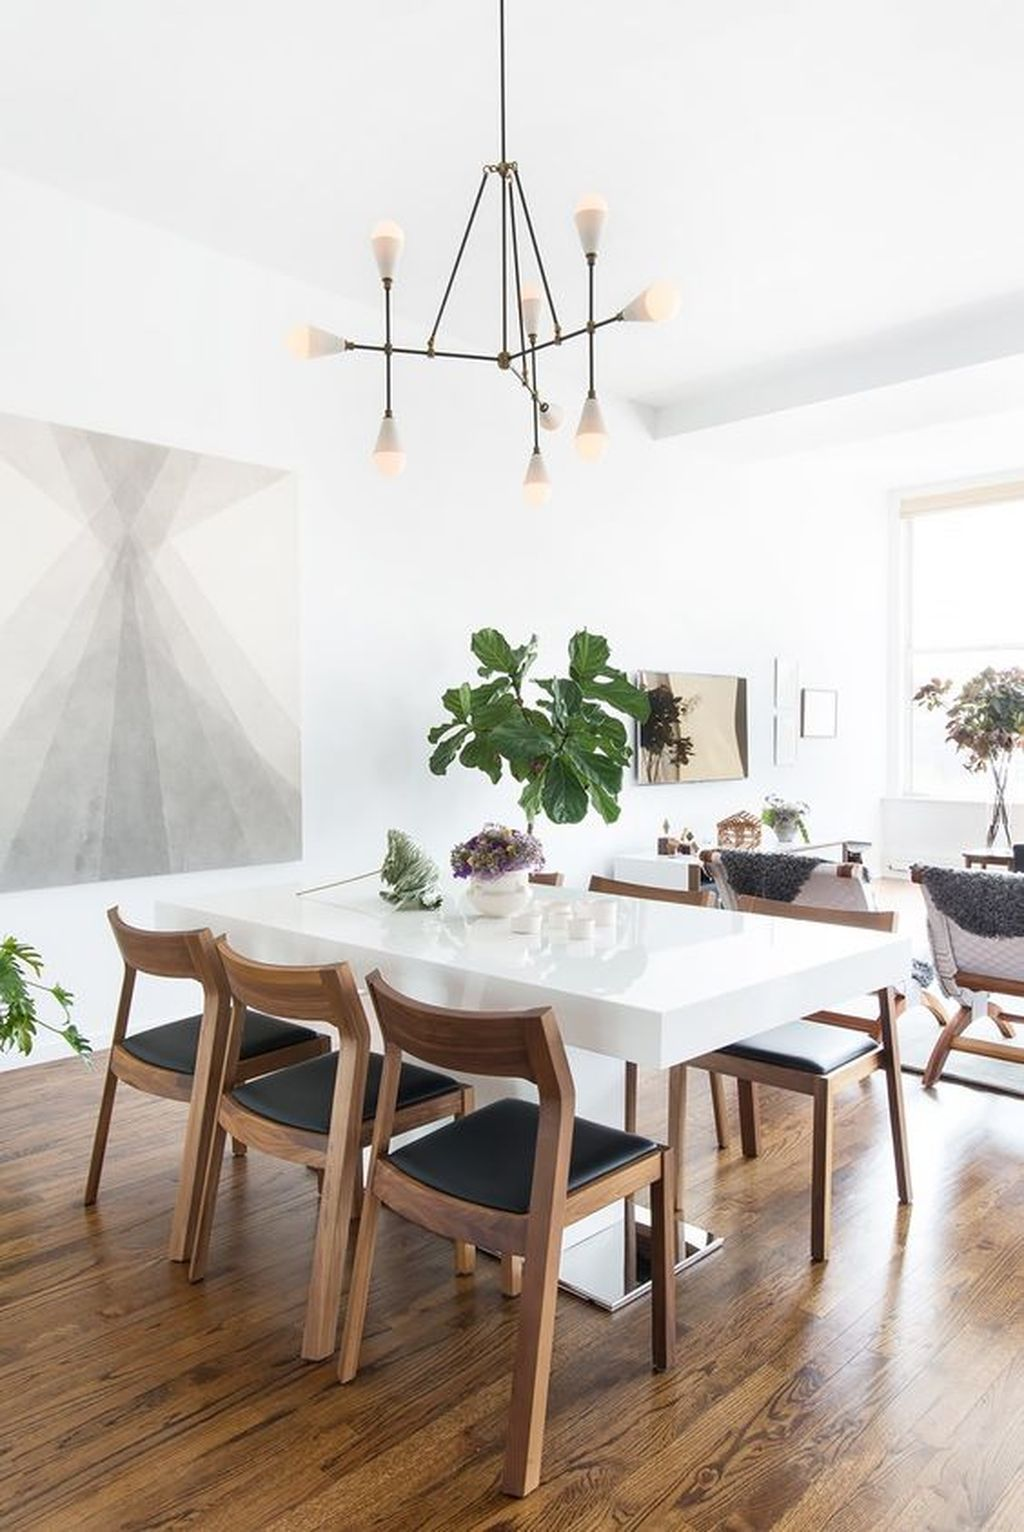 Fashion week Amazing most dining rooms photo for girls